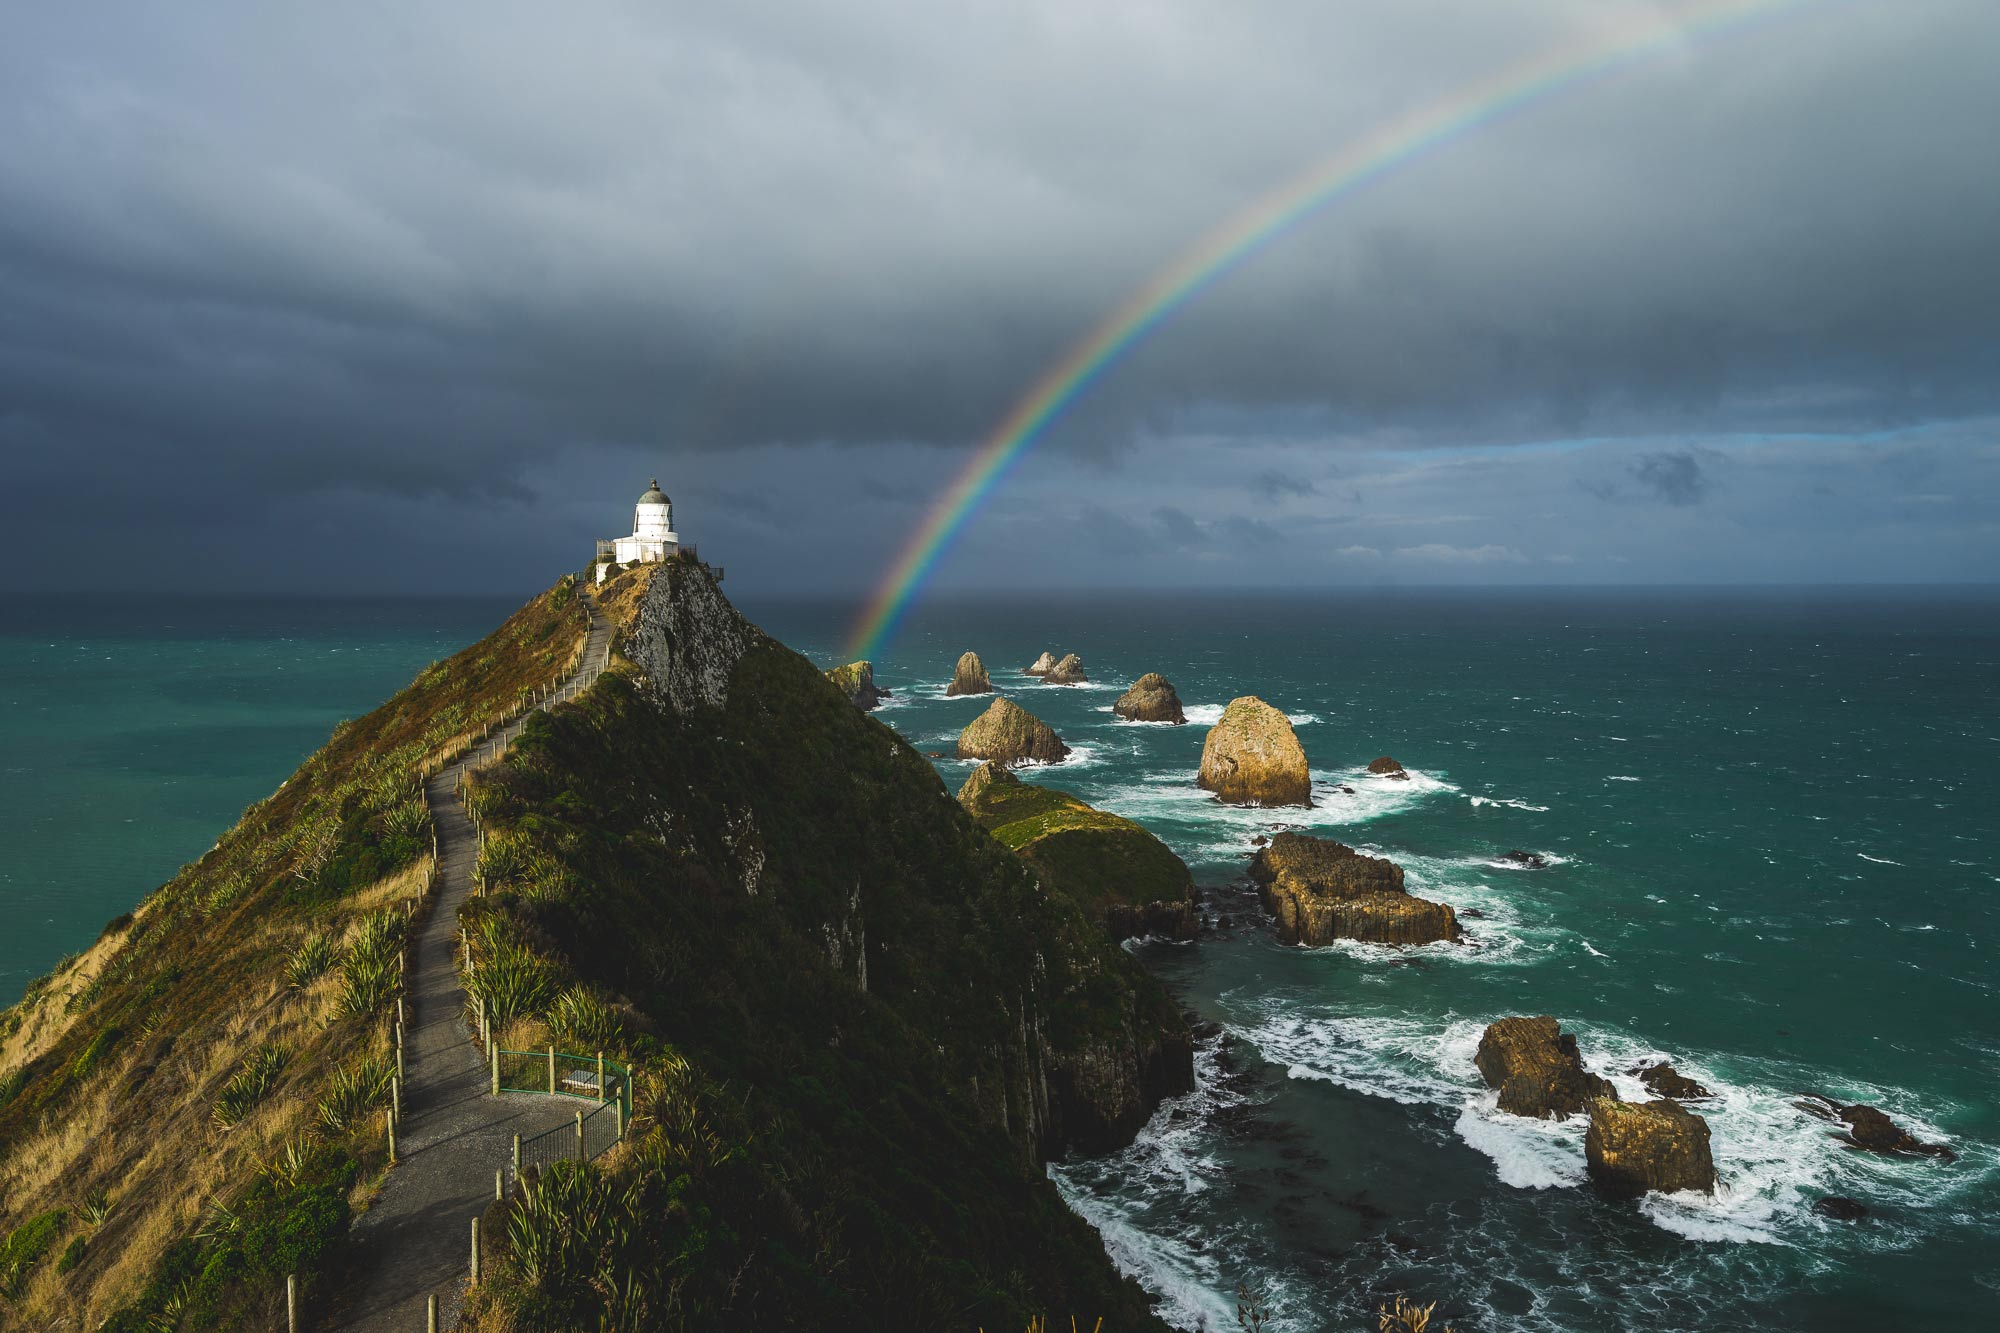 Rainbow over Nugget Point lighthouse in Catlins, NZ